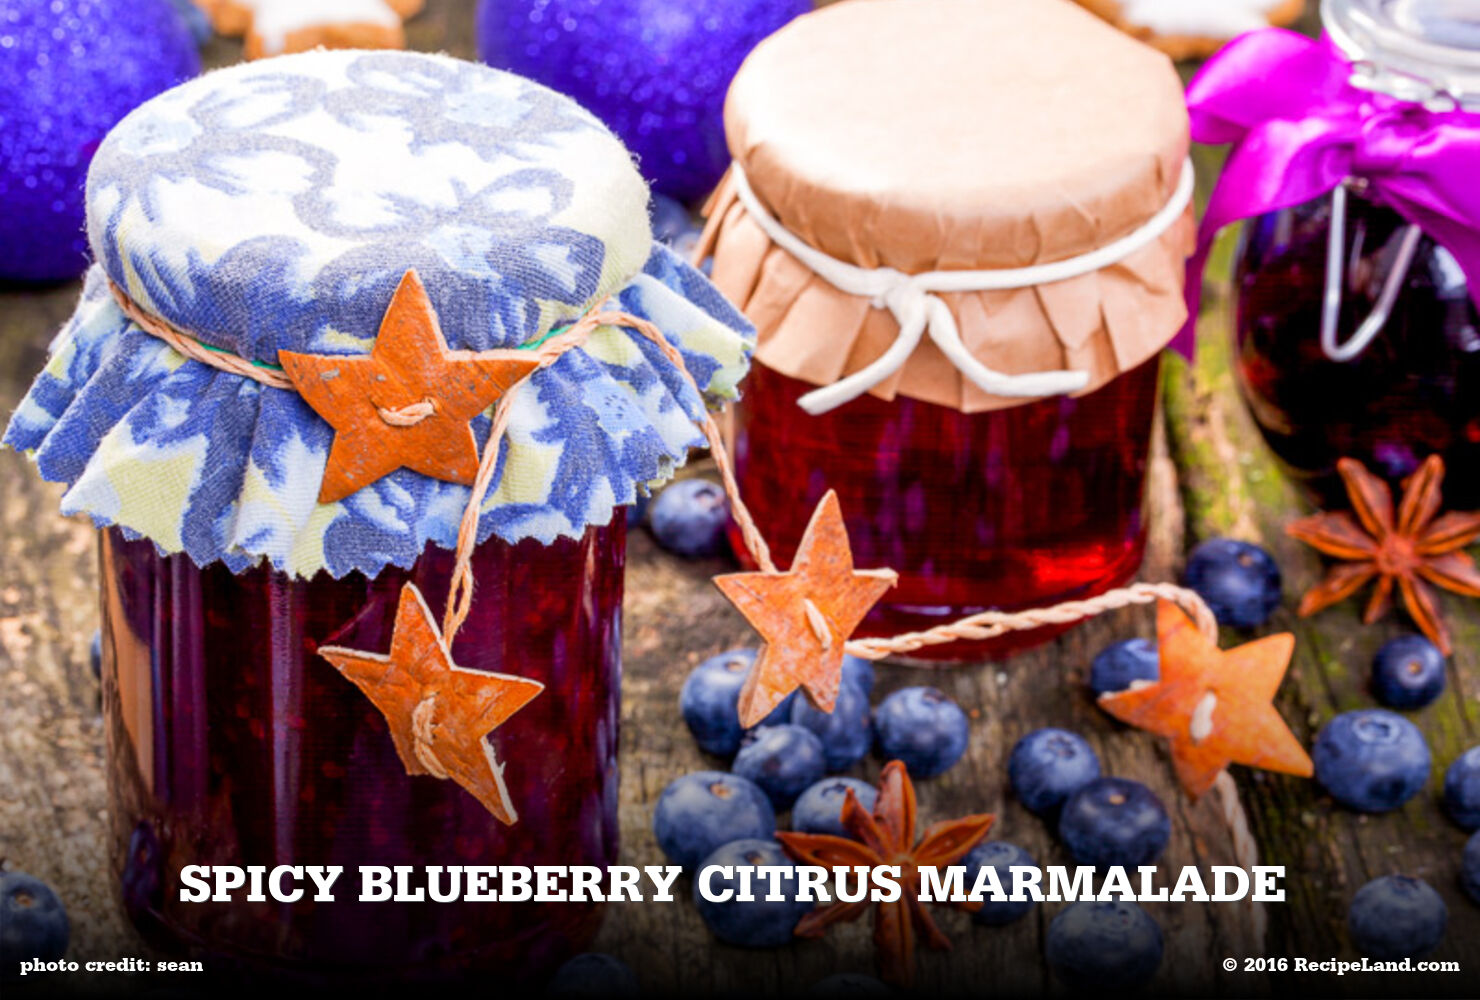 Spicy Blueberry Citrus Marmalade